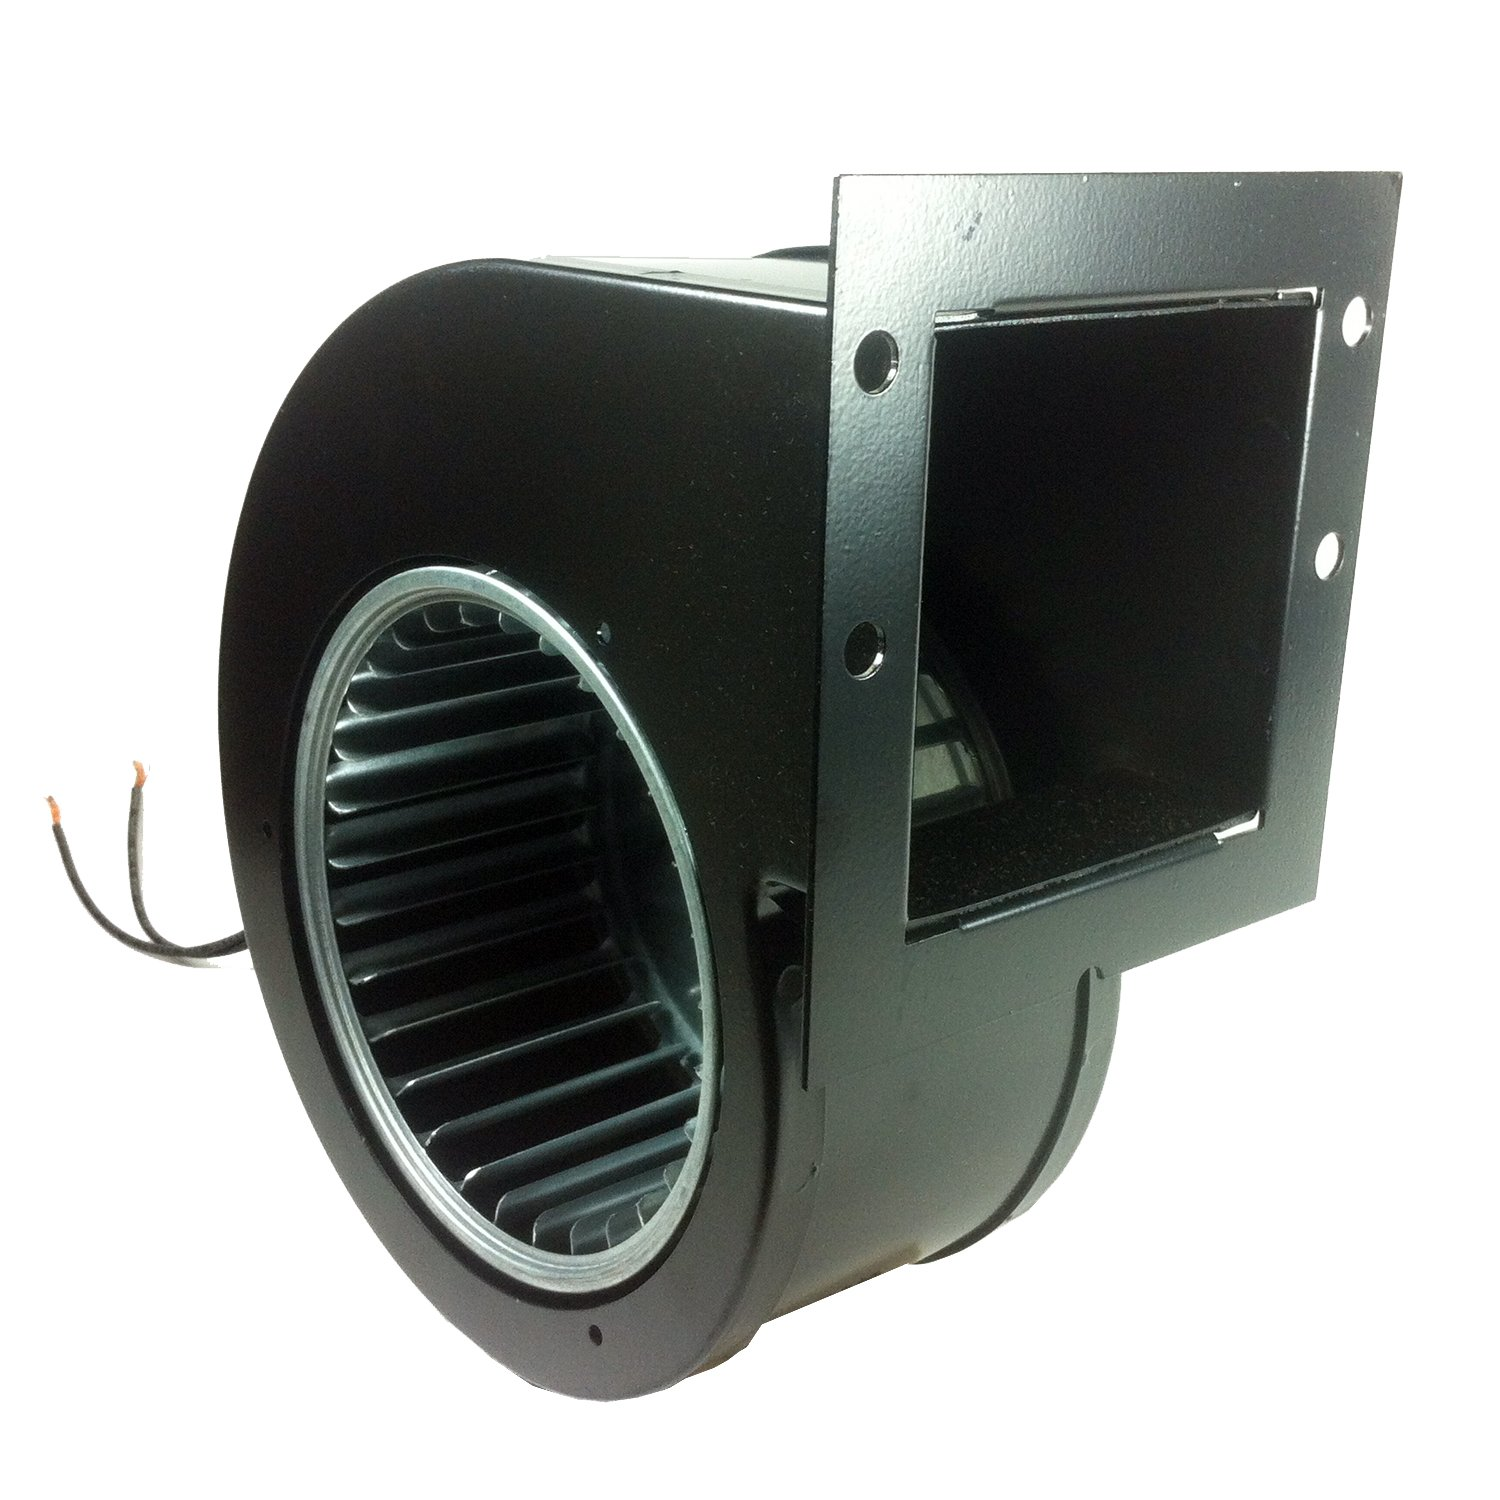 Amazon.com: Century 458 Replacement Blower for Wood Stoves 160 CFM ...